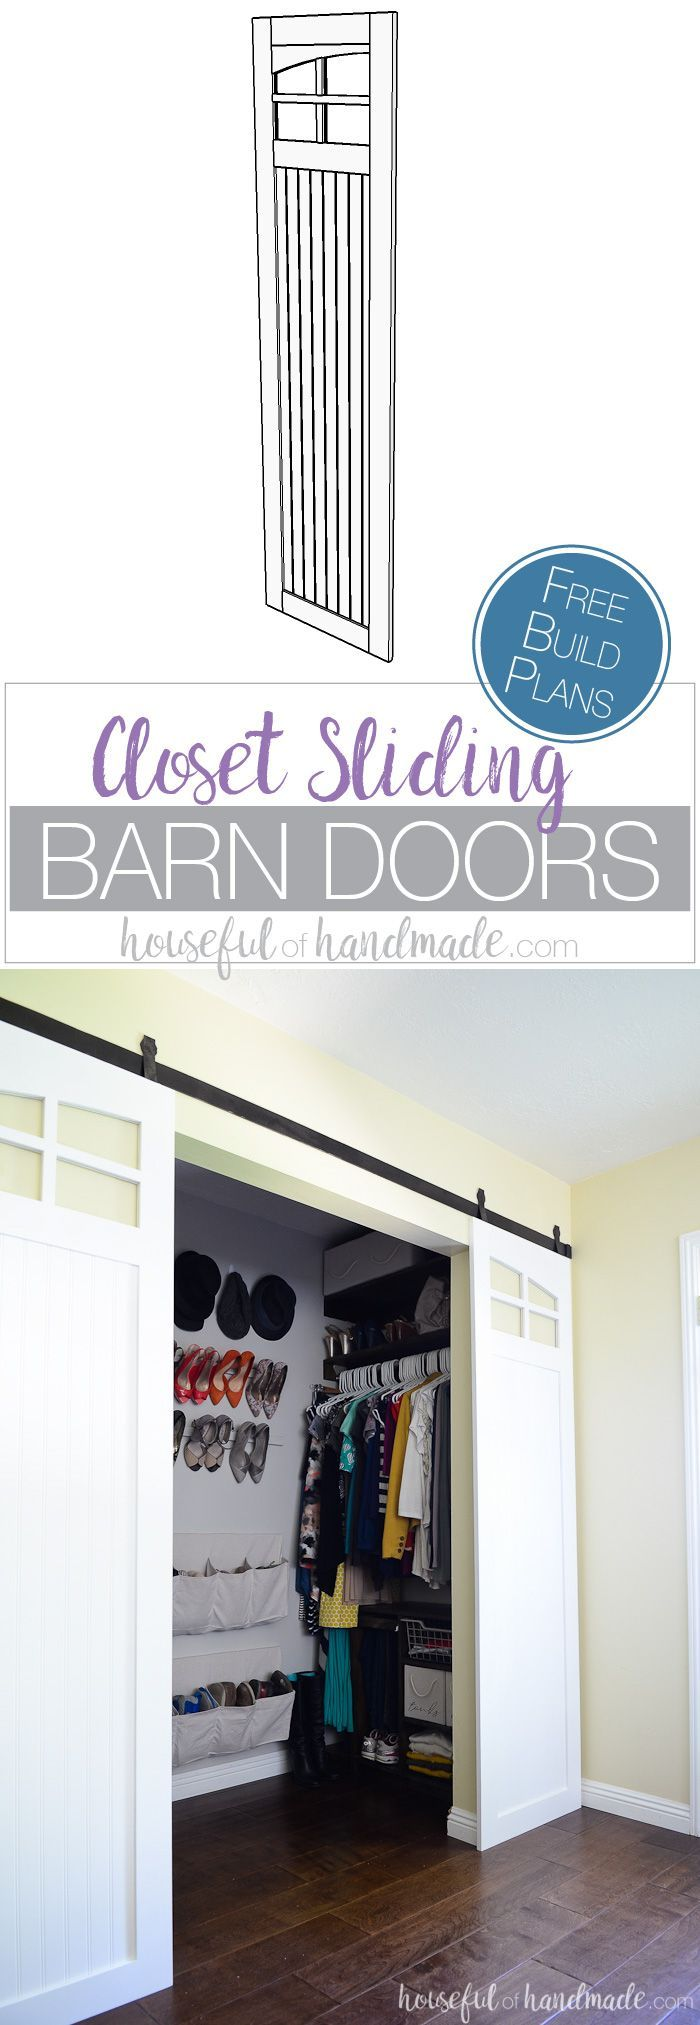 best 25 barn door closet ideas on pinterest sliding. Black Bedroom Furniture Sets. Home Design Ideas